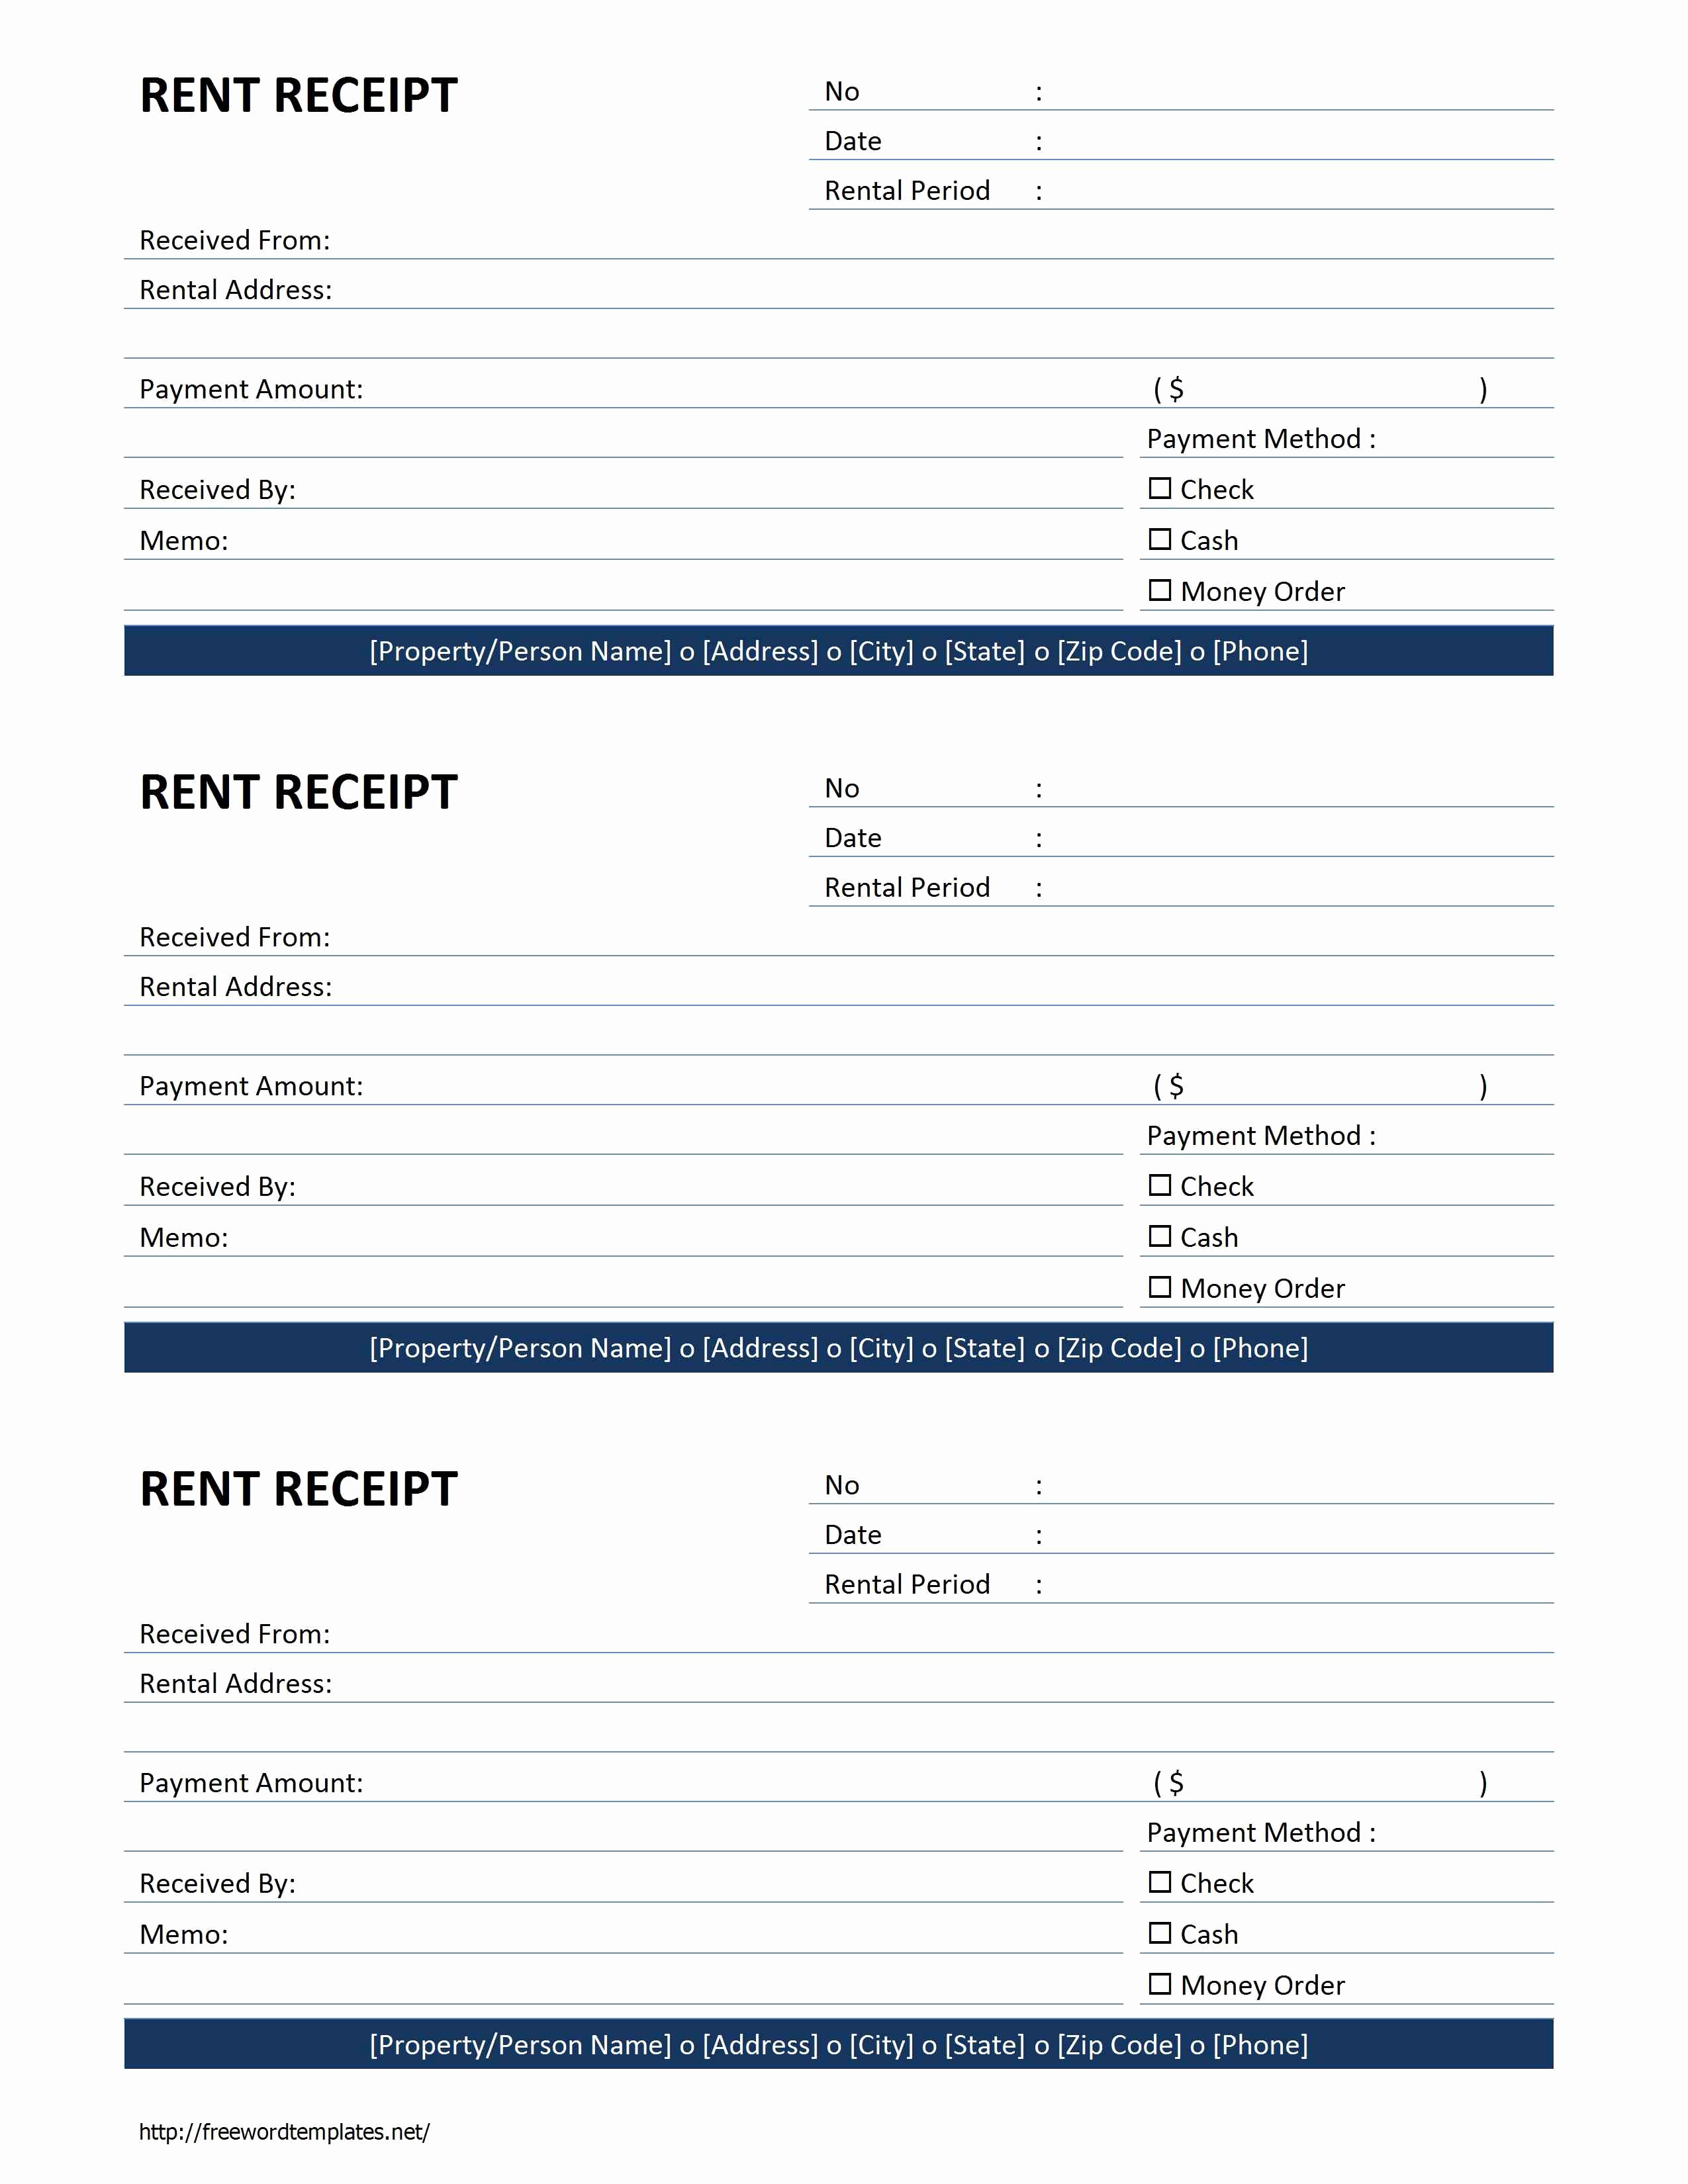 Legal Invoice Template Word Lovely Rent Receipt Template   Document Within Legal Invoice Template